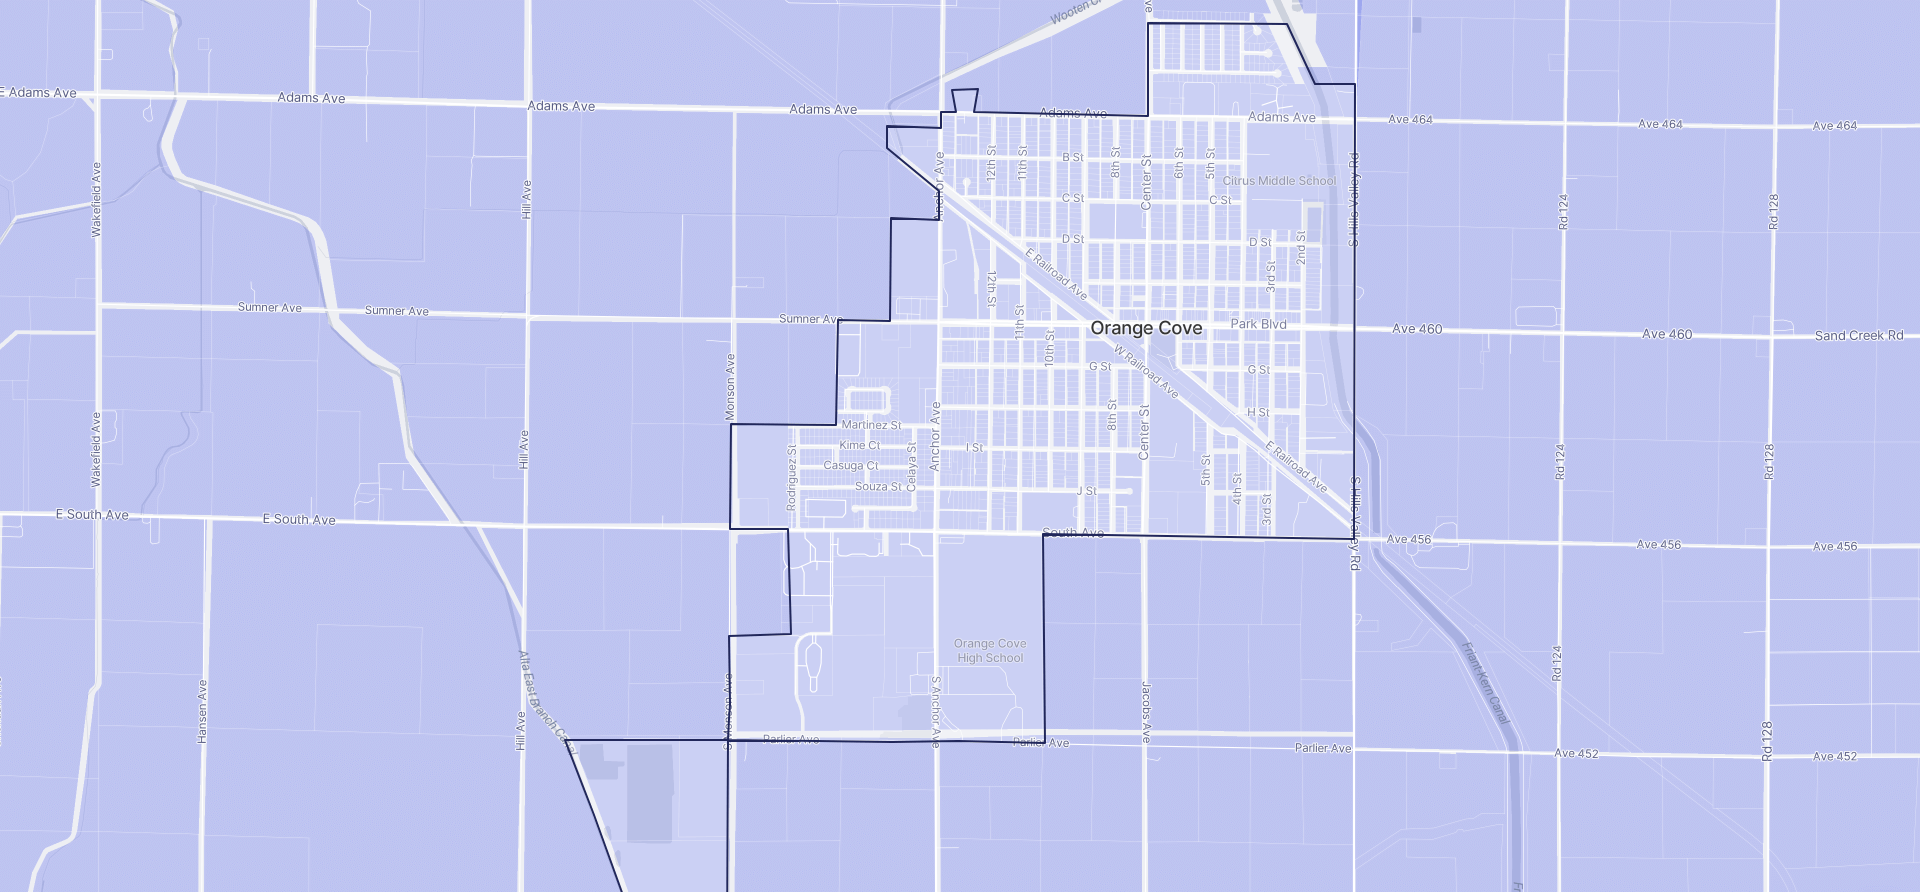 Image of Orange Cove boundaries on a map.